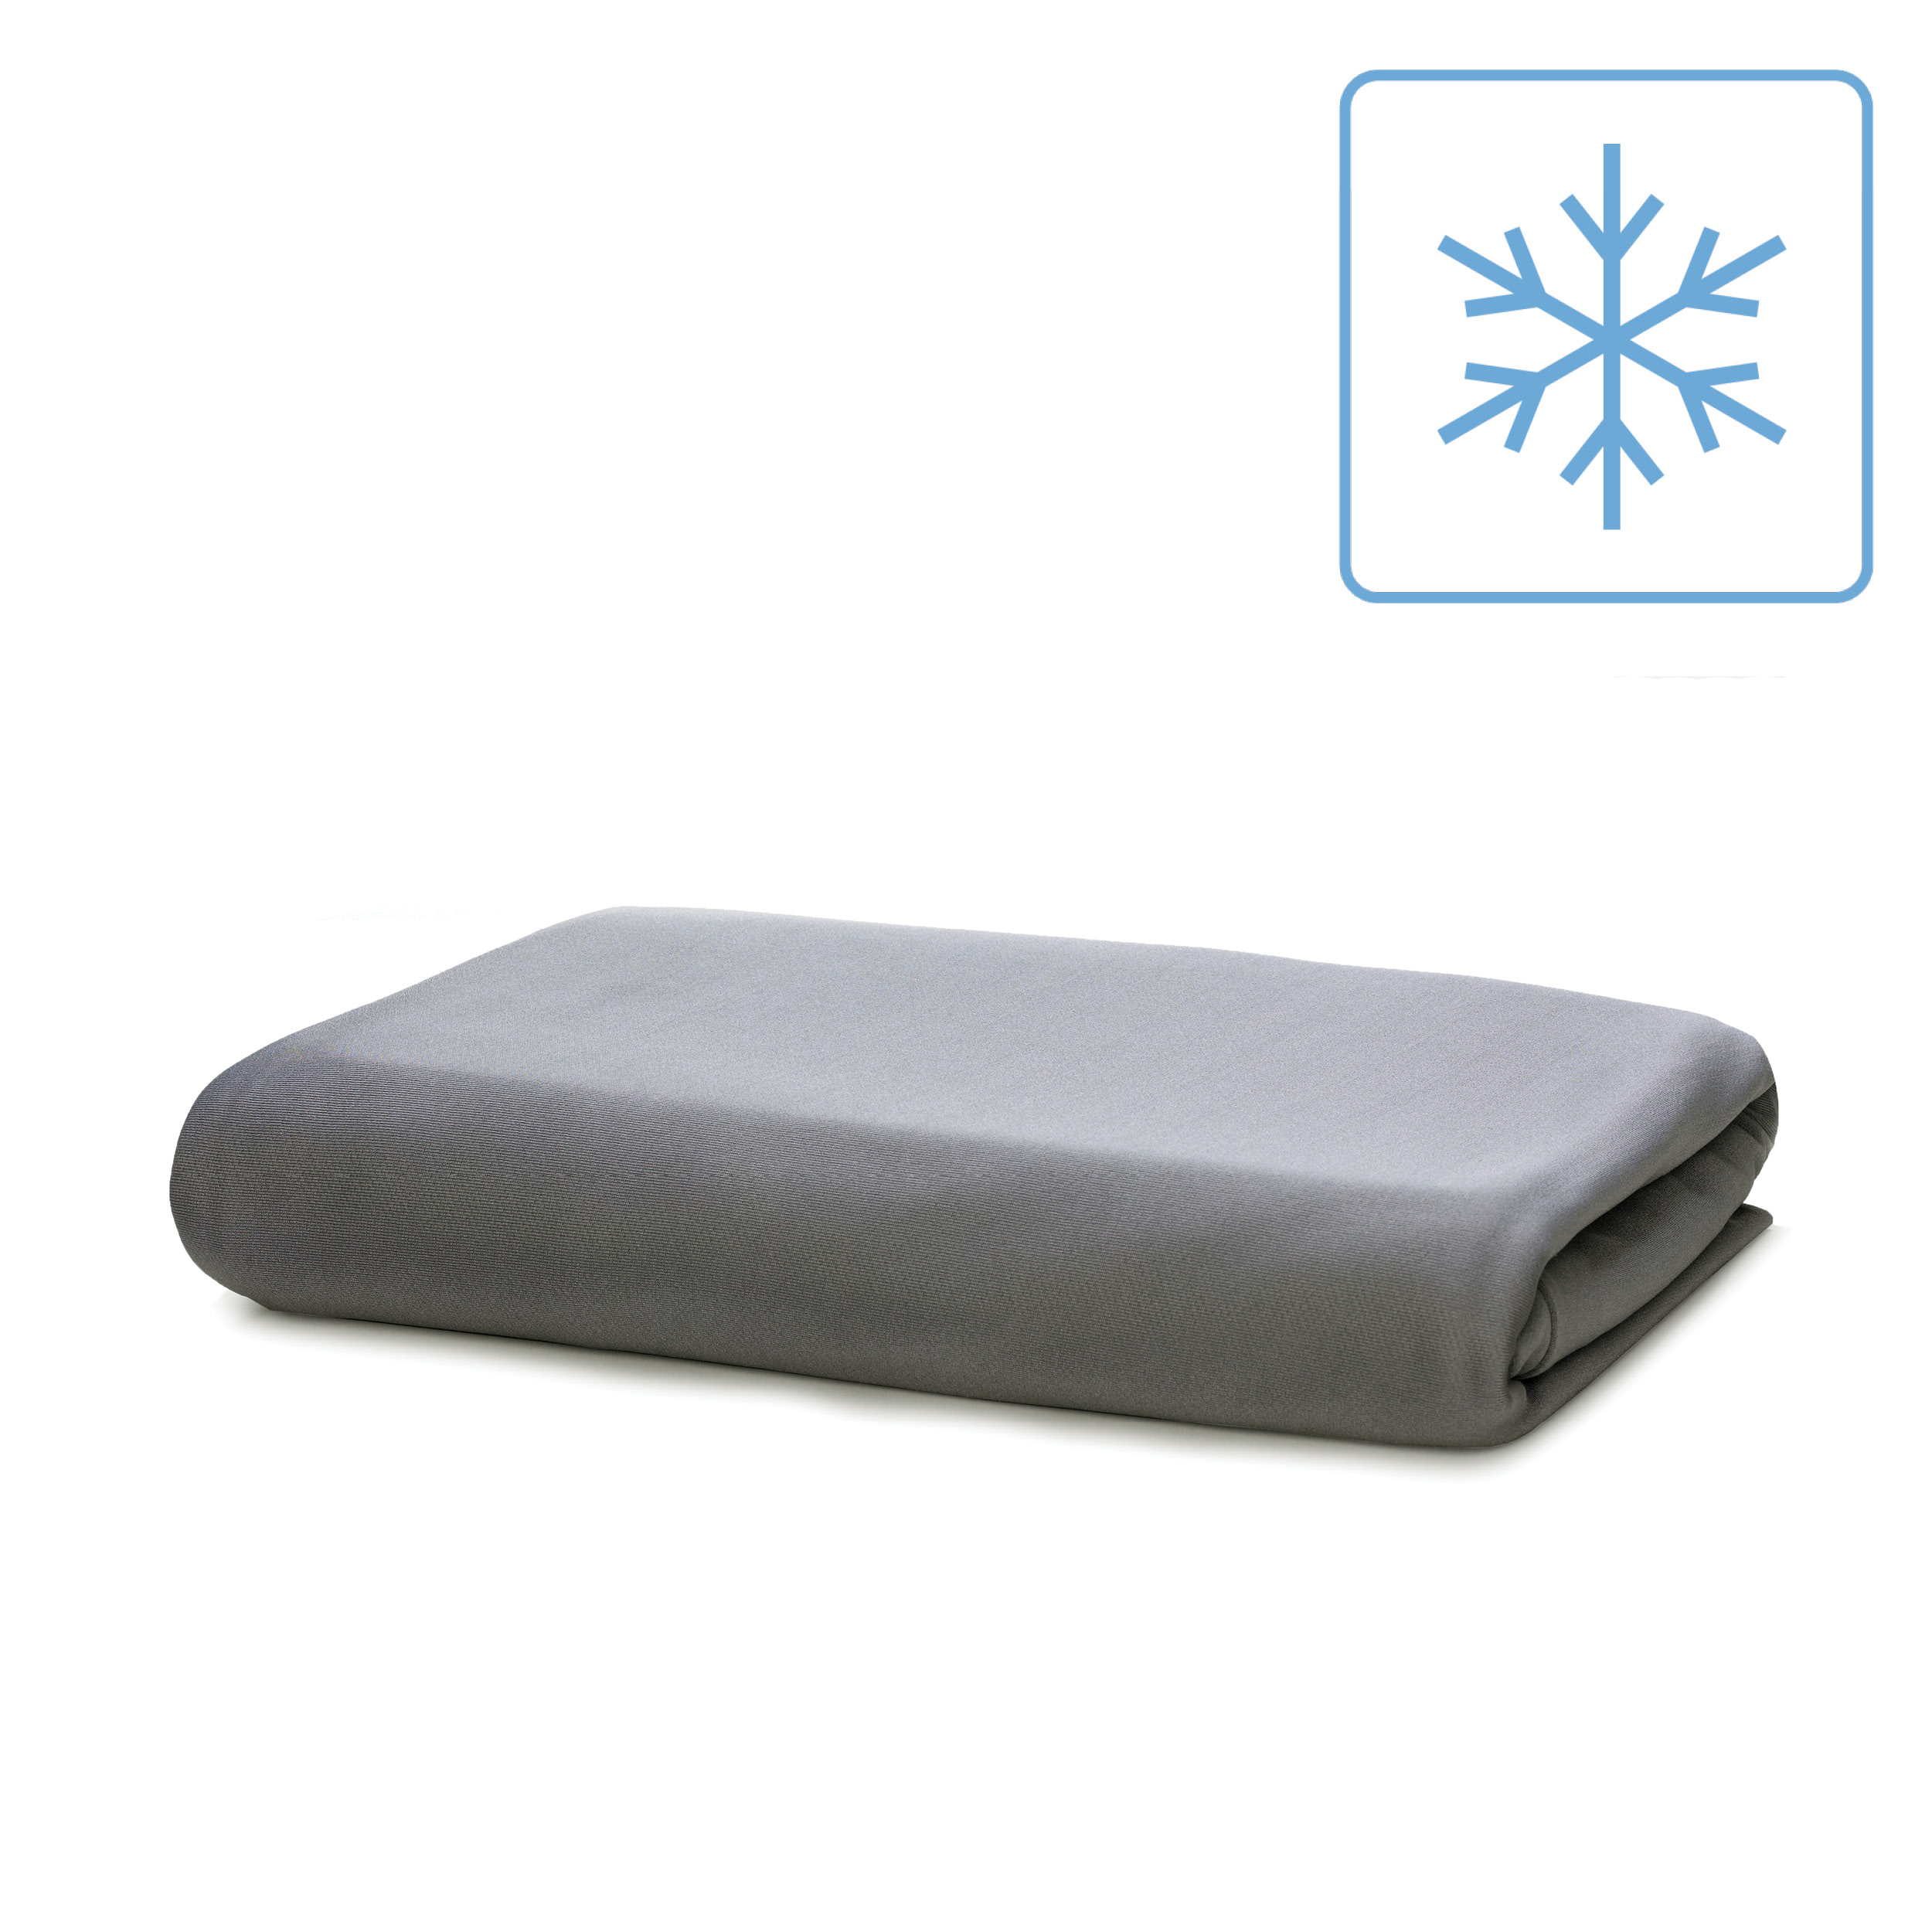 hot foamtrade snore gelly polar walmartcom morereg roll blanket pillow and cold gallery cushion no